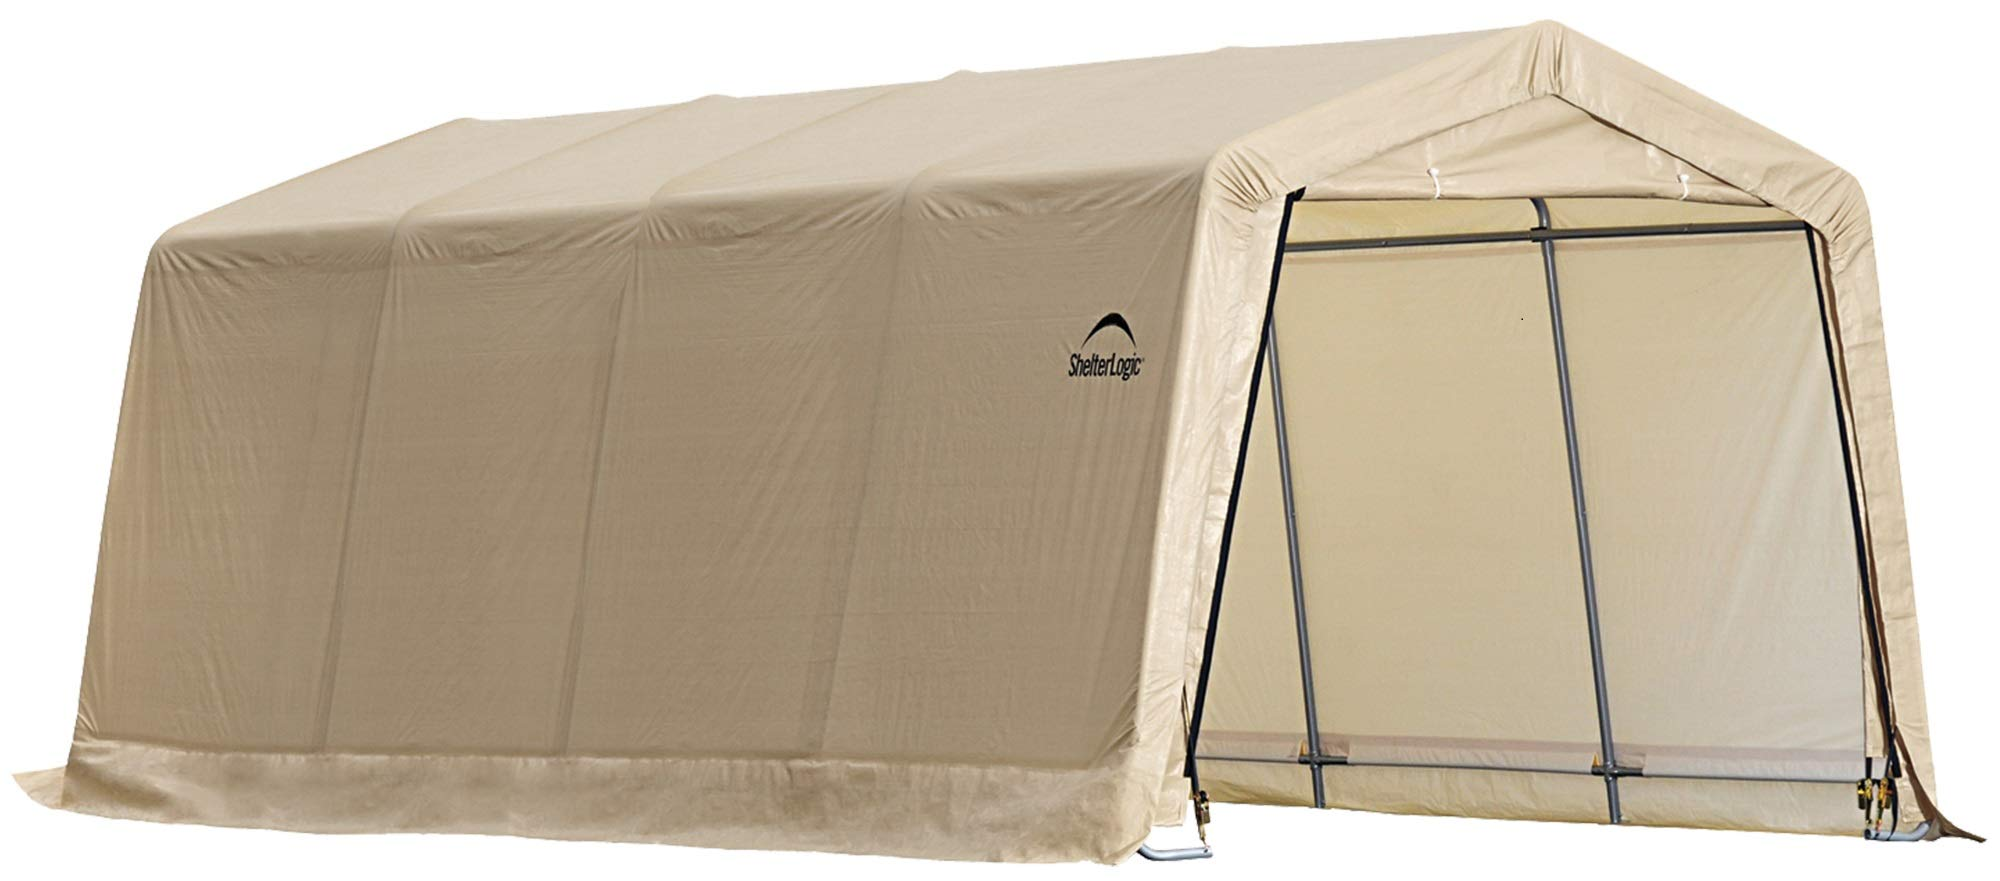 ShelterLogic 10' x 20' x 8' All-Steel Metal Frame Peak Style Roof Instant Garage and AutoShelter with Waterproof and UV-Treated Ripstop Cover by ShelterLogic